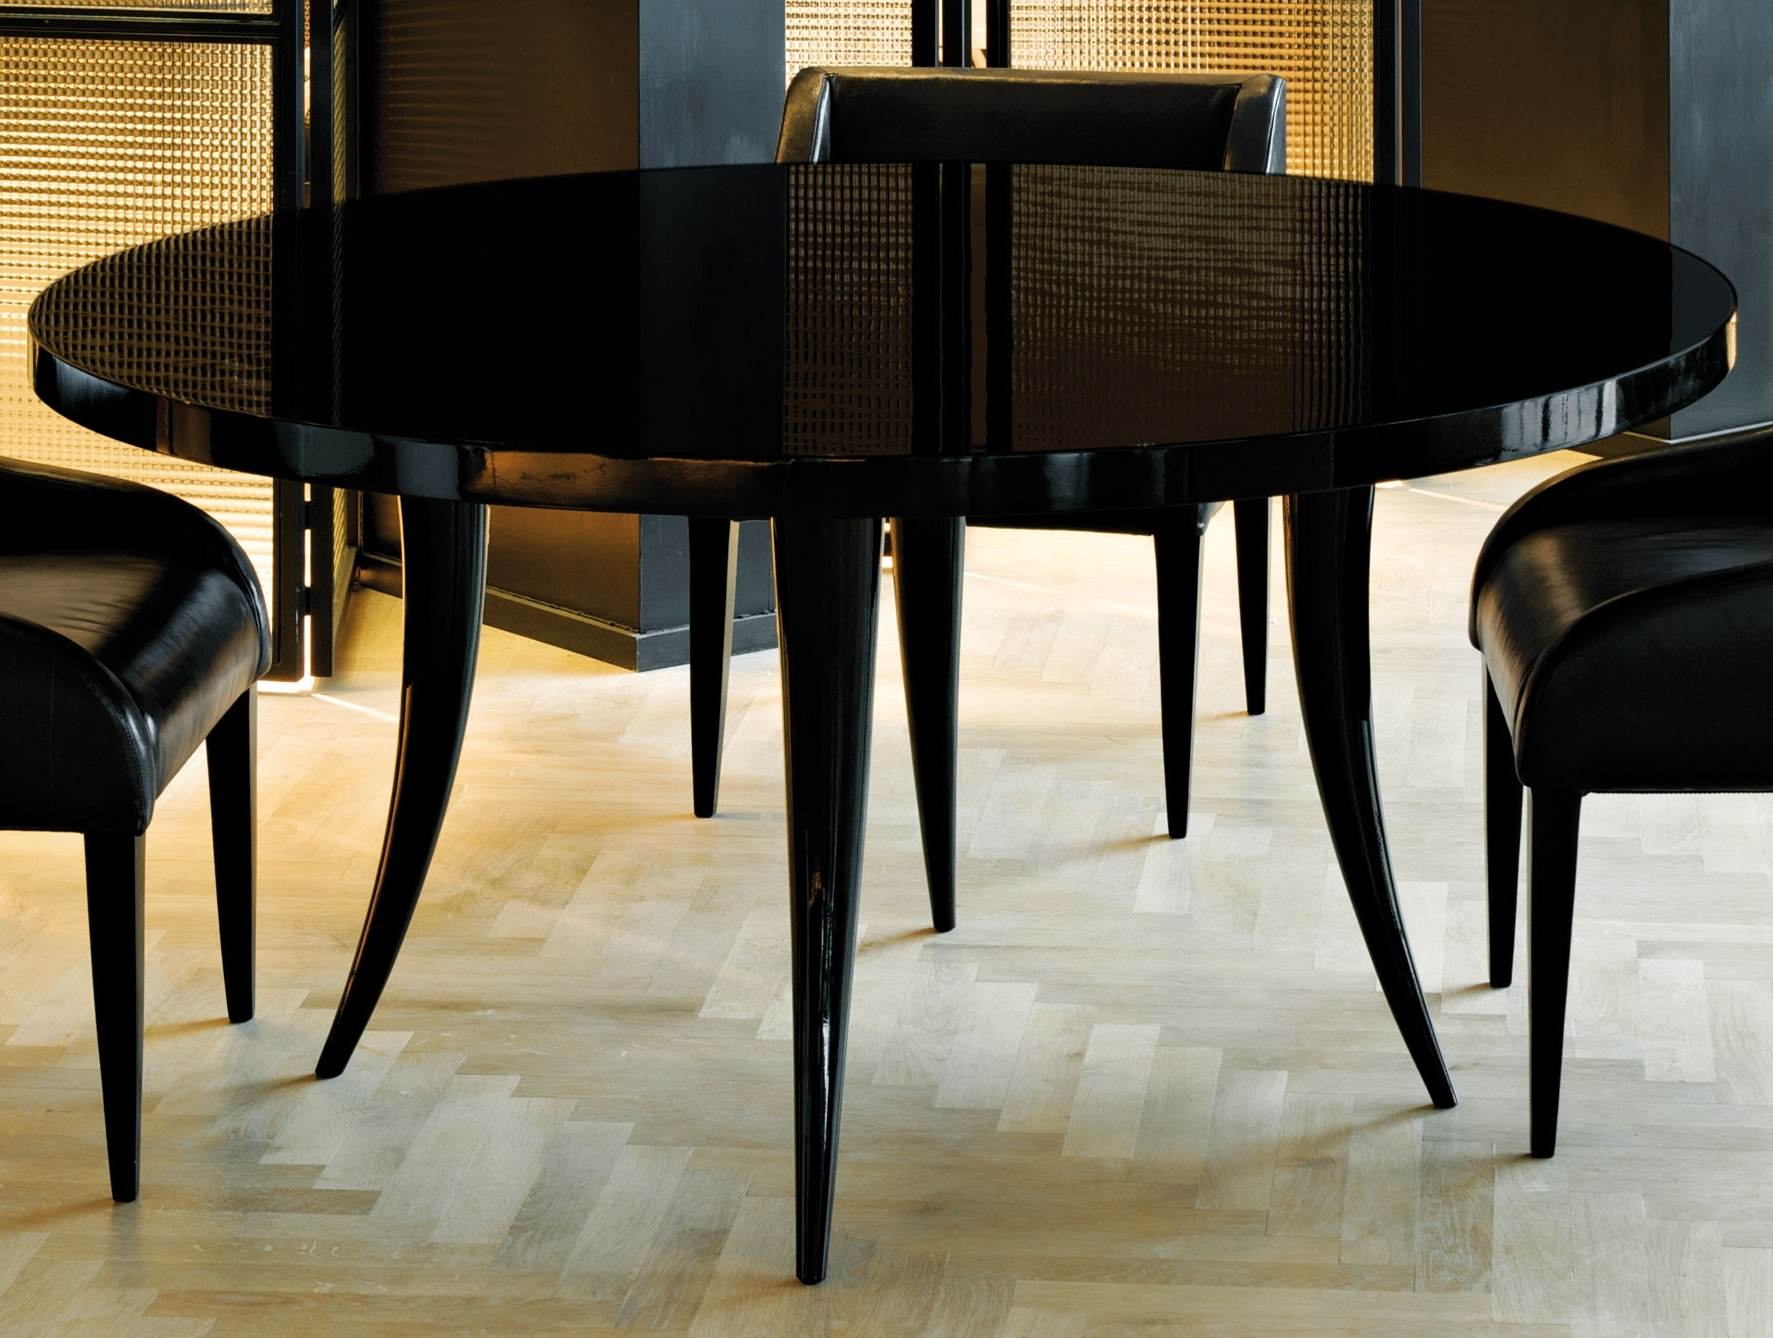 Nella Vetrina Sabre Modern Italian Round Black Wood Dining Table Intended For Most Current Dining Tables Dark Wood (Gallery 9 of 25)